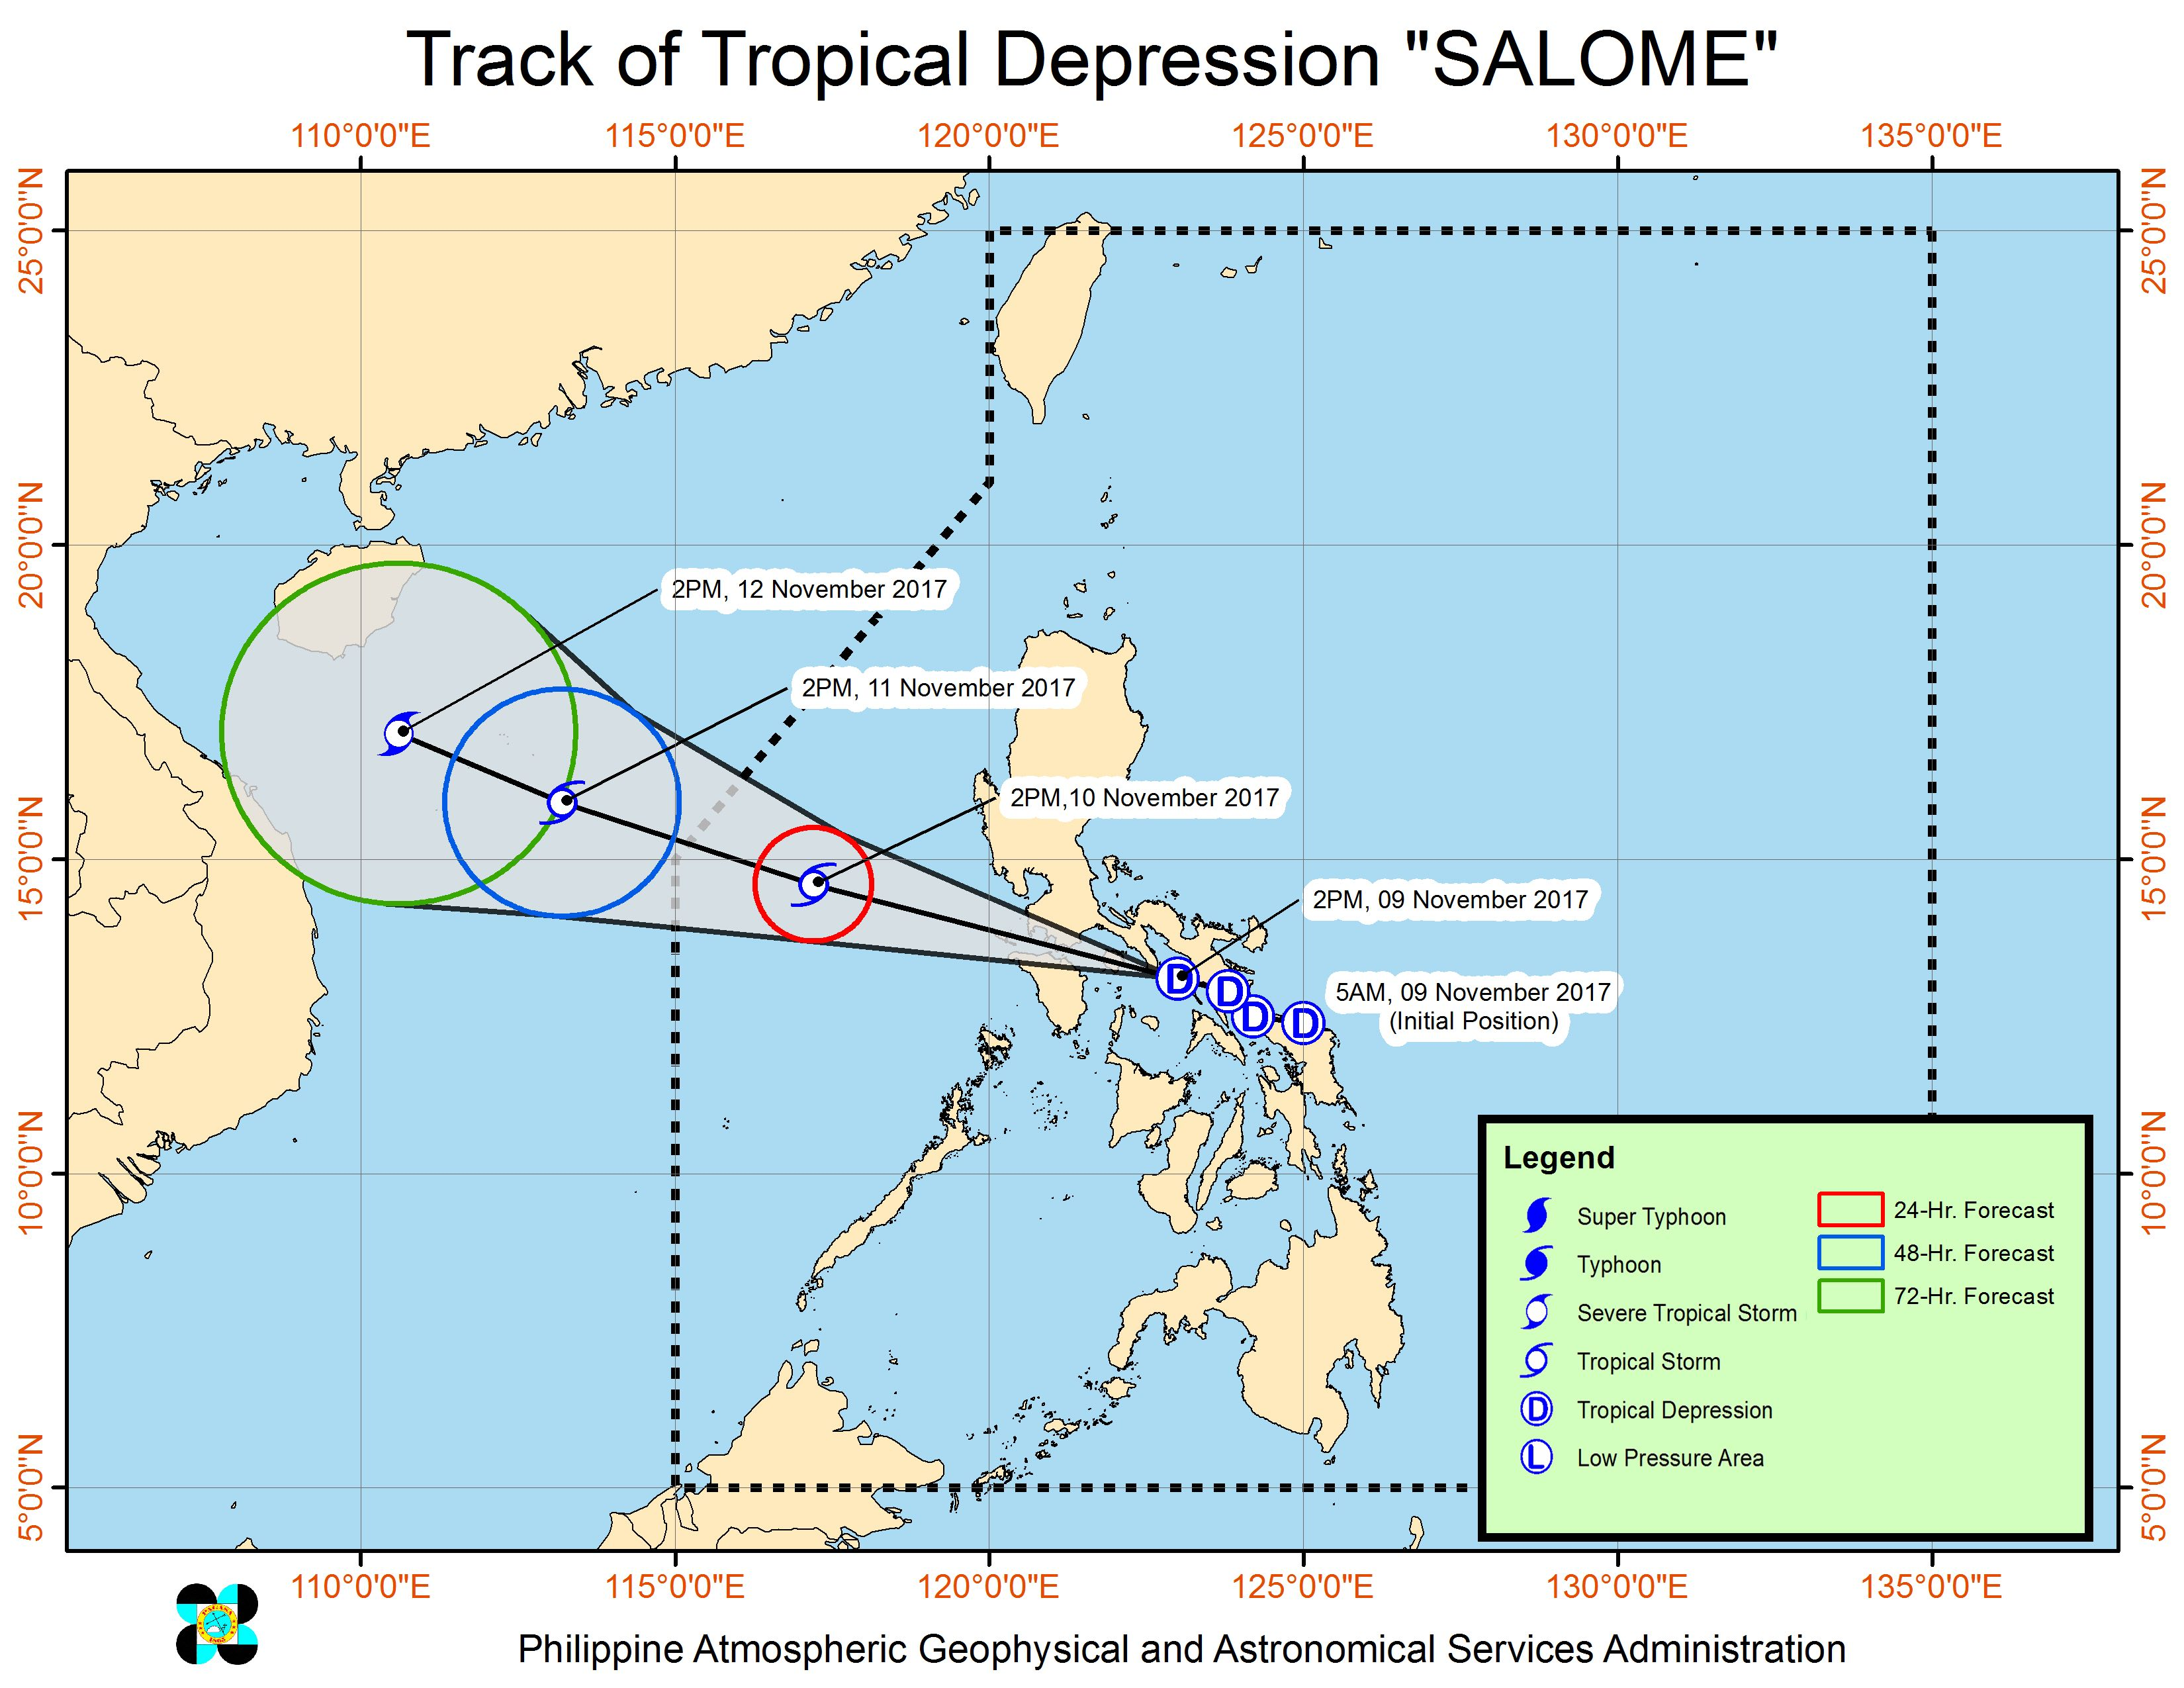 Forecast track of Tropical Depression Salome as of November 9, 5 pm. Image courtesy of PAGASA